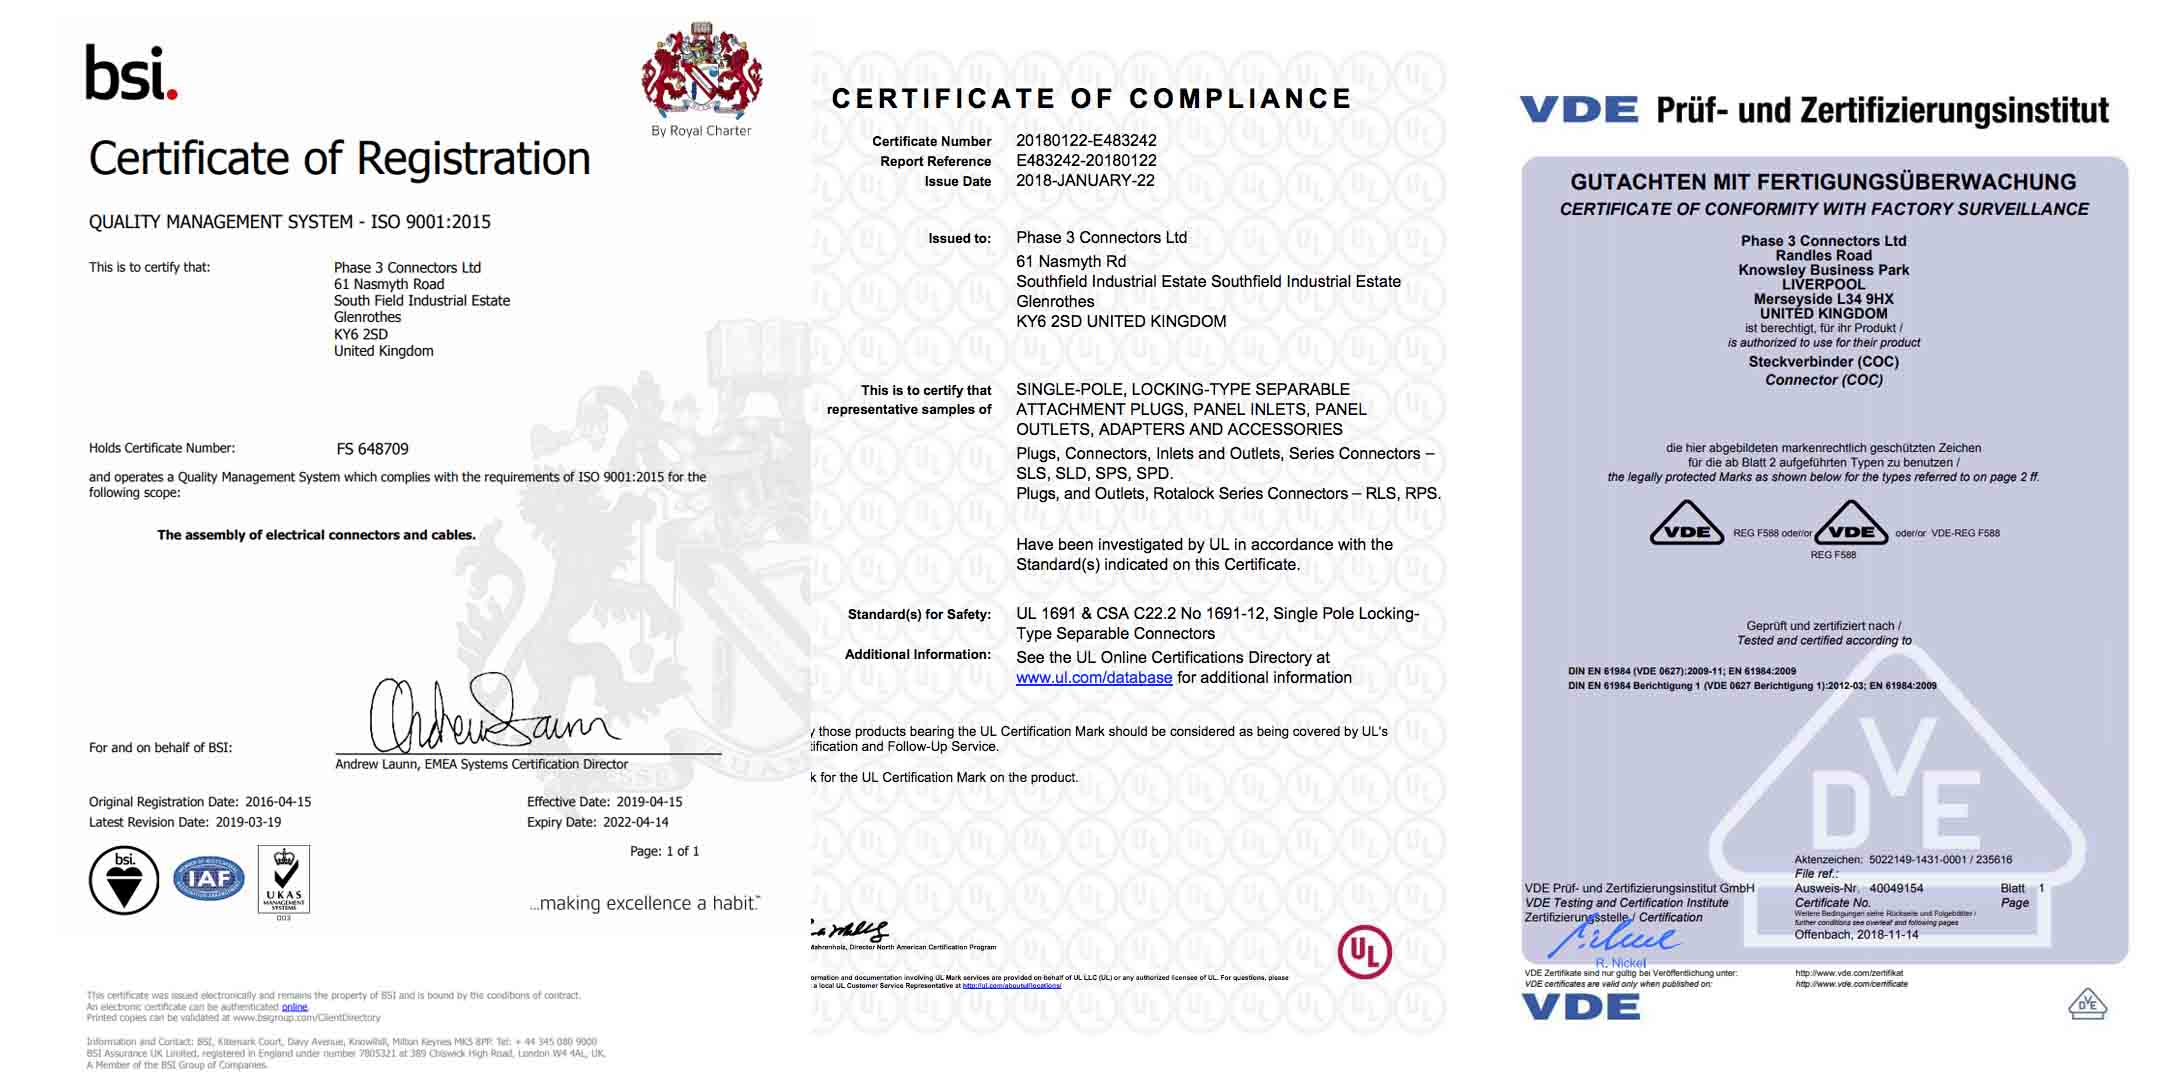 Phase 3 Certificates